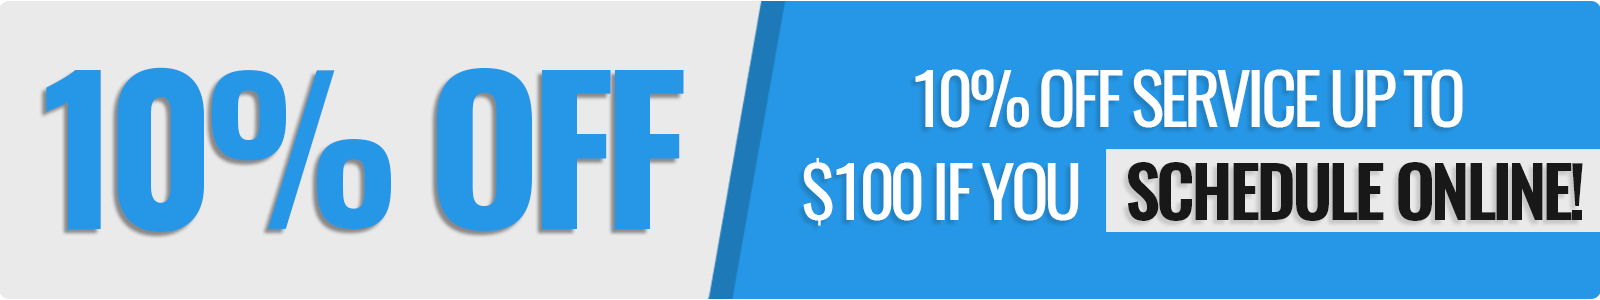 10% Off $100 when you schedule online